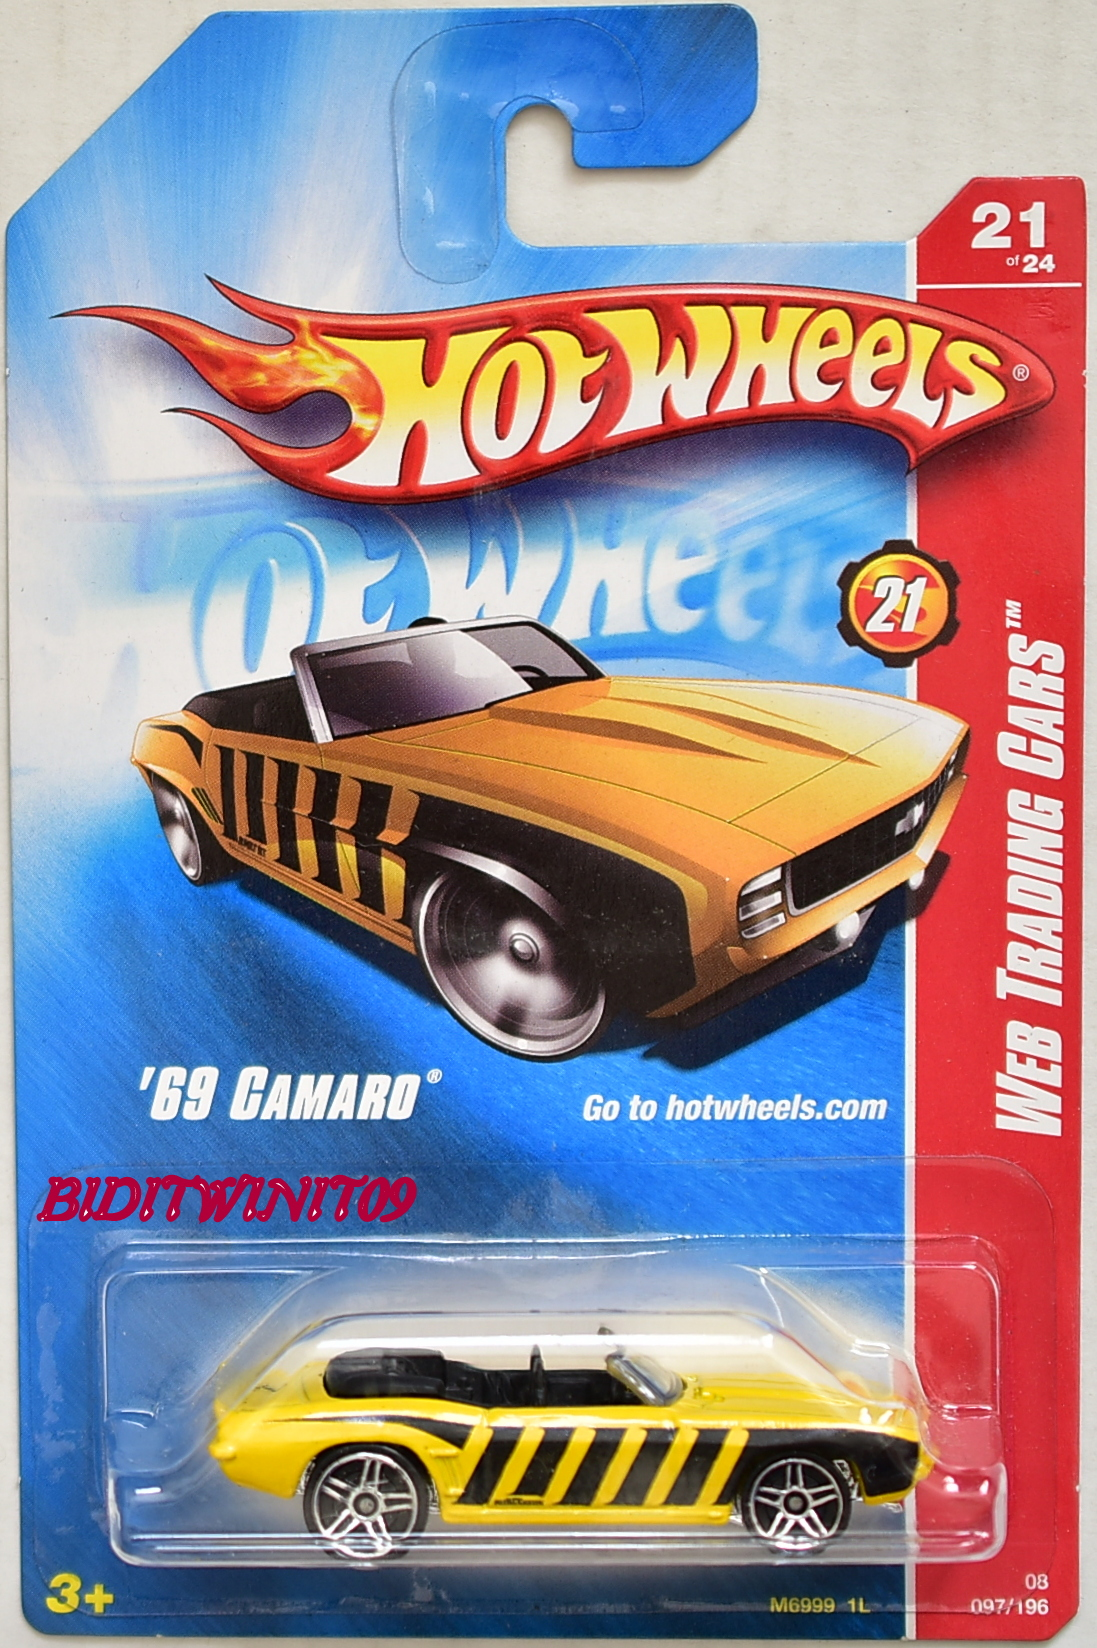 HOT WHEELS 2008 WEB TRADING CARS '69 CAMARO YELLOW - Click Image to Close